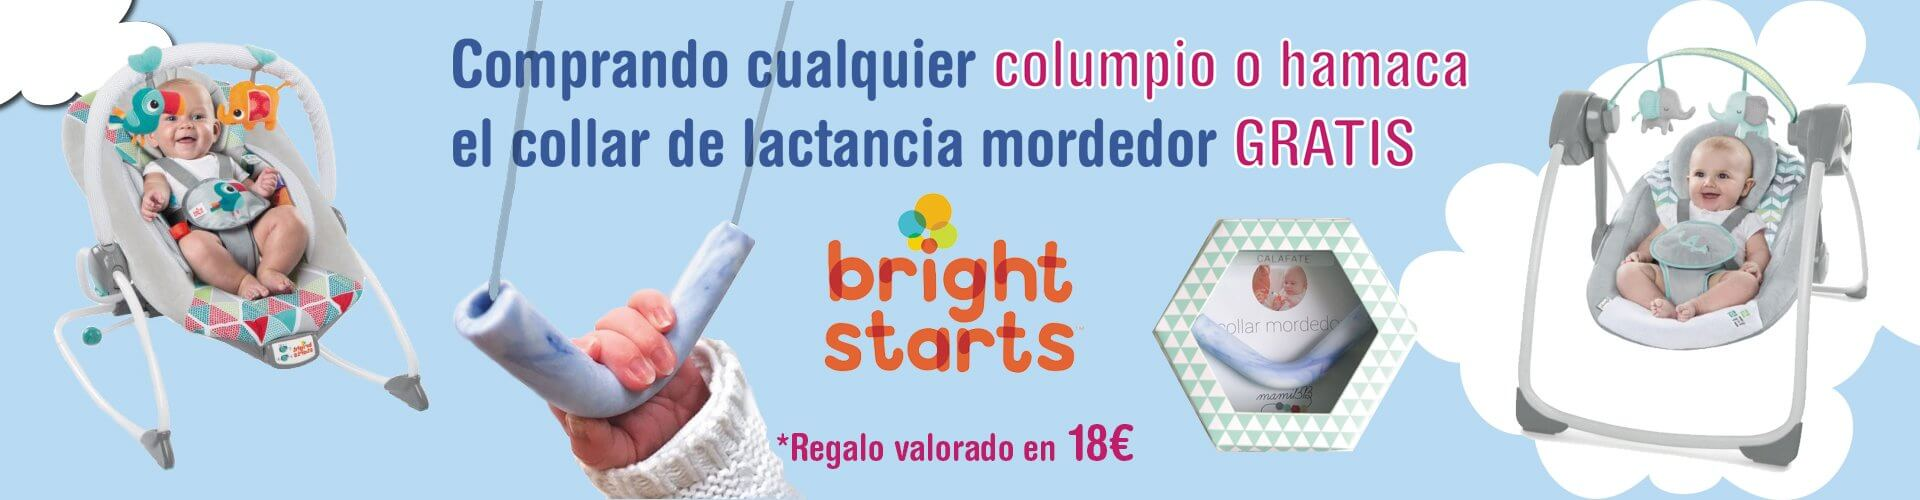 FULL_BRIGHTSTARTS_JULIO